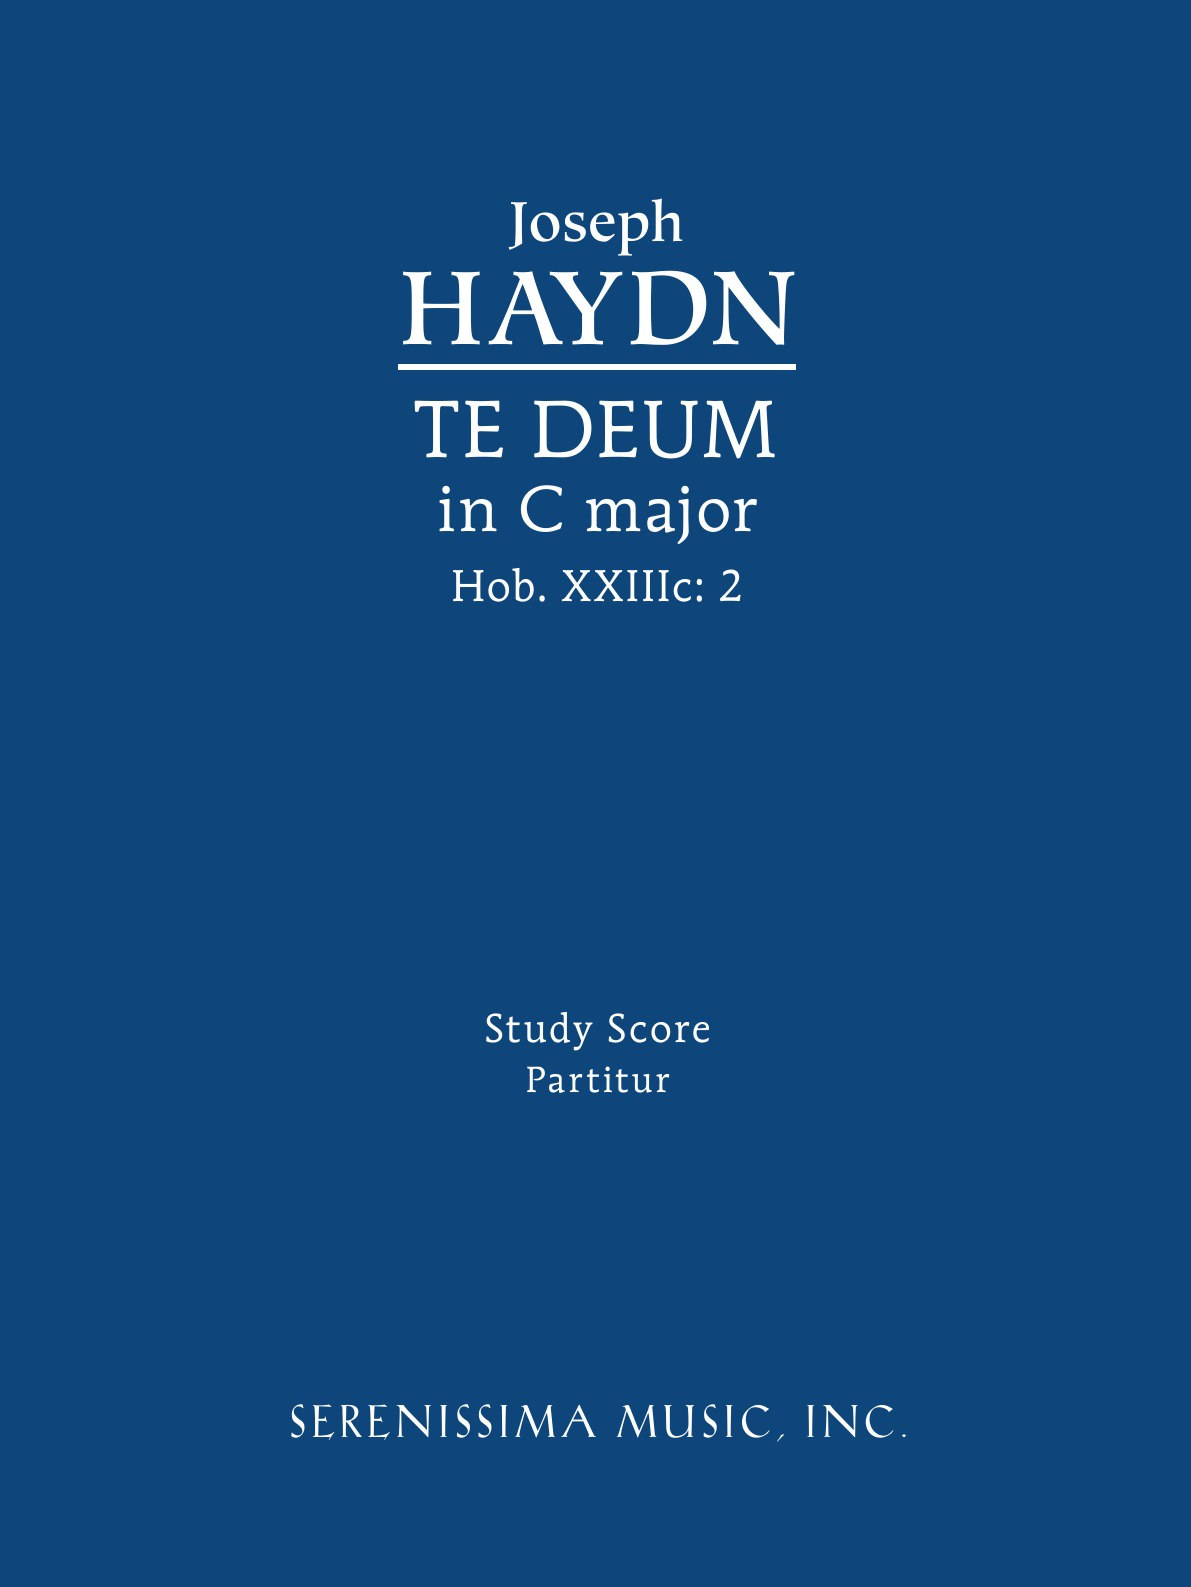 Joseph Haydn, Richard W. Sargeant Te Deum in C major, Hob.XXIIIc.2. Study score w faulkes barcarolle in g major page 2 page 7